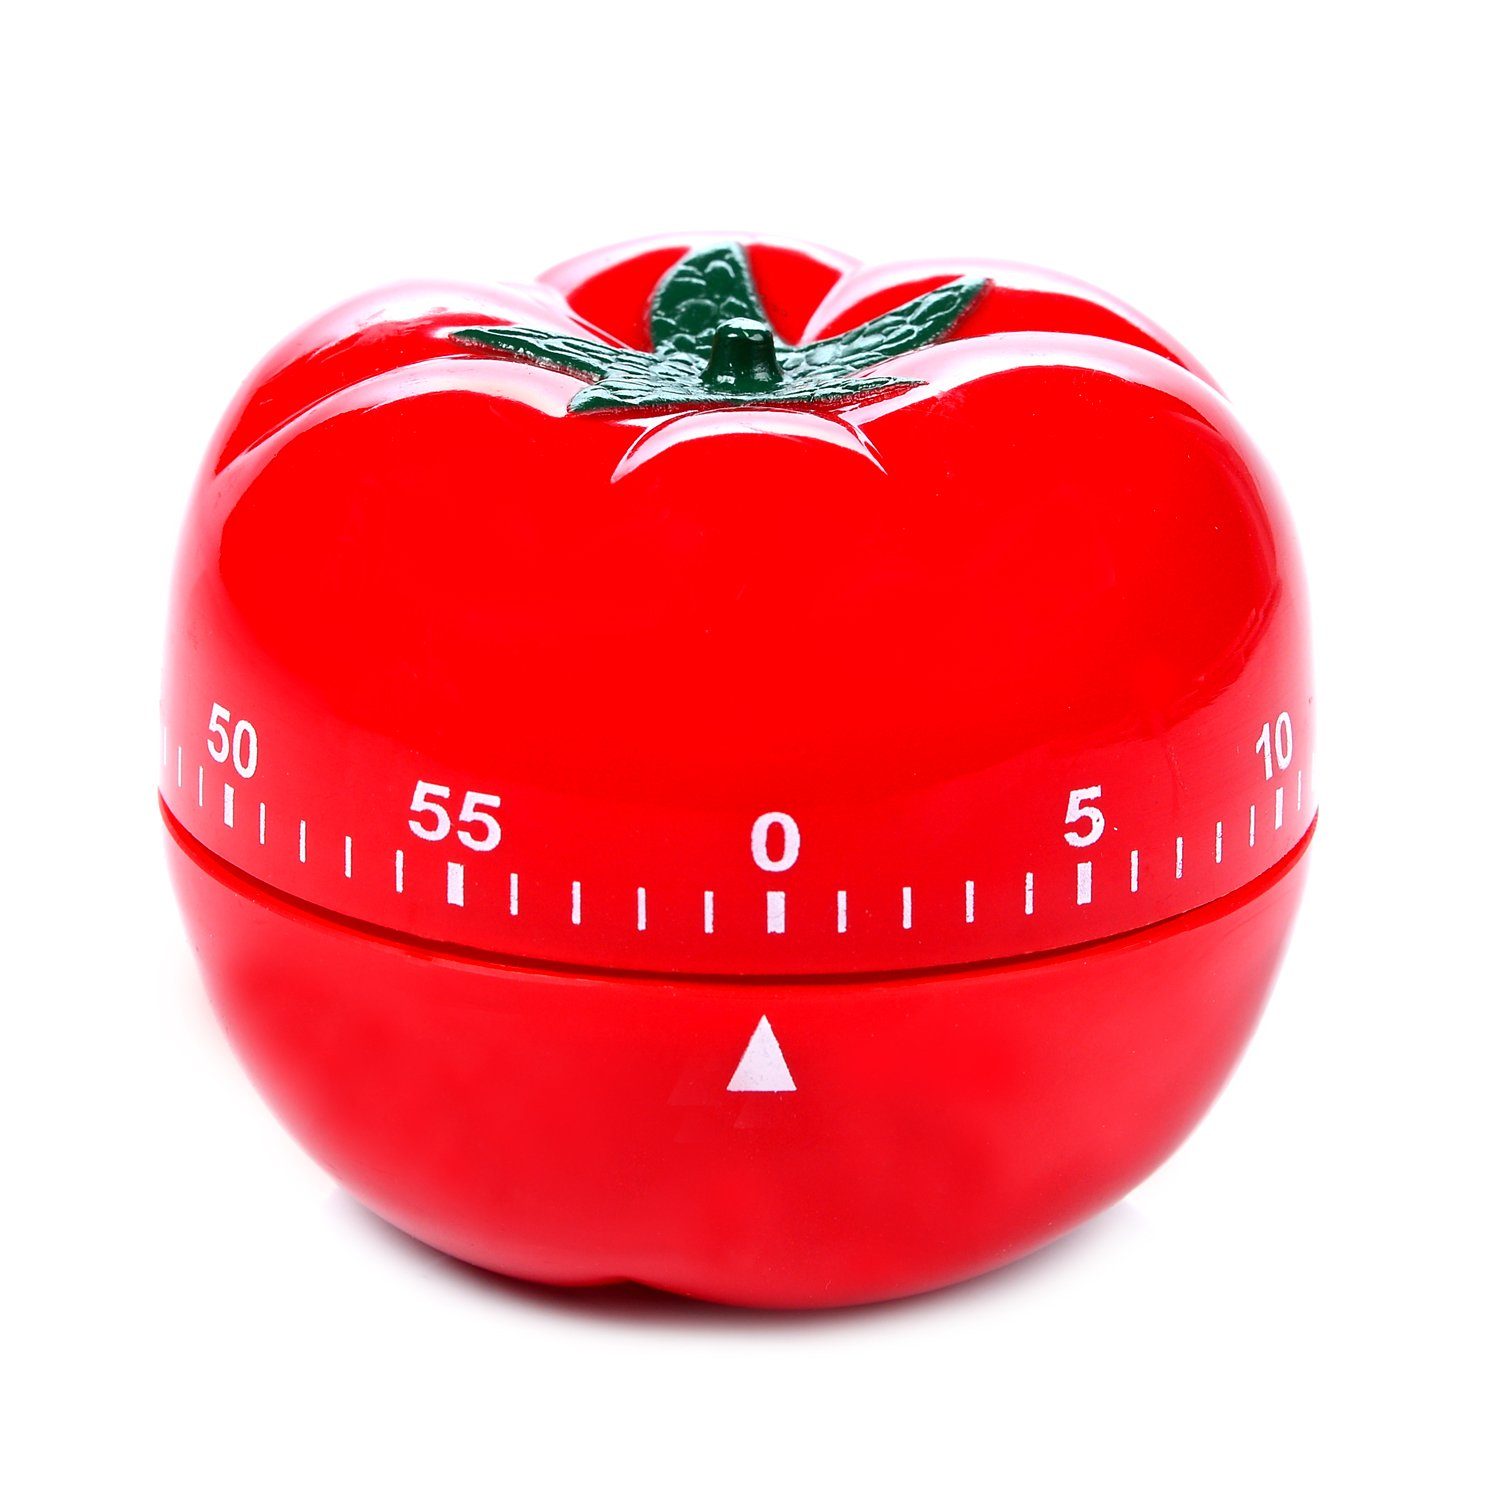 LEMEGO Kitchen Timer Cooking Timer Digital Loud Mechanical Alarm Retractable Countdown Clock 55 Minute (Red Tomato)